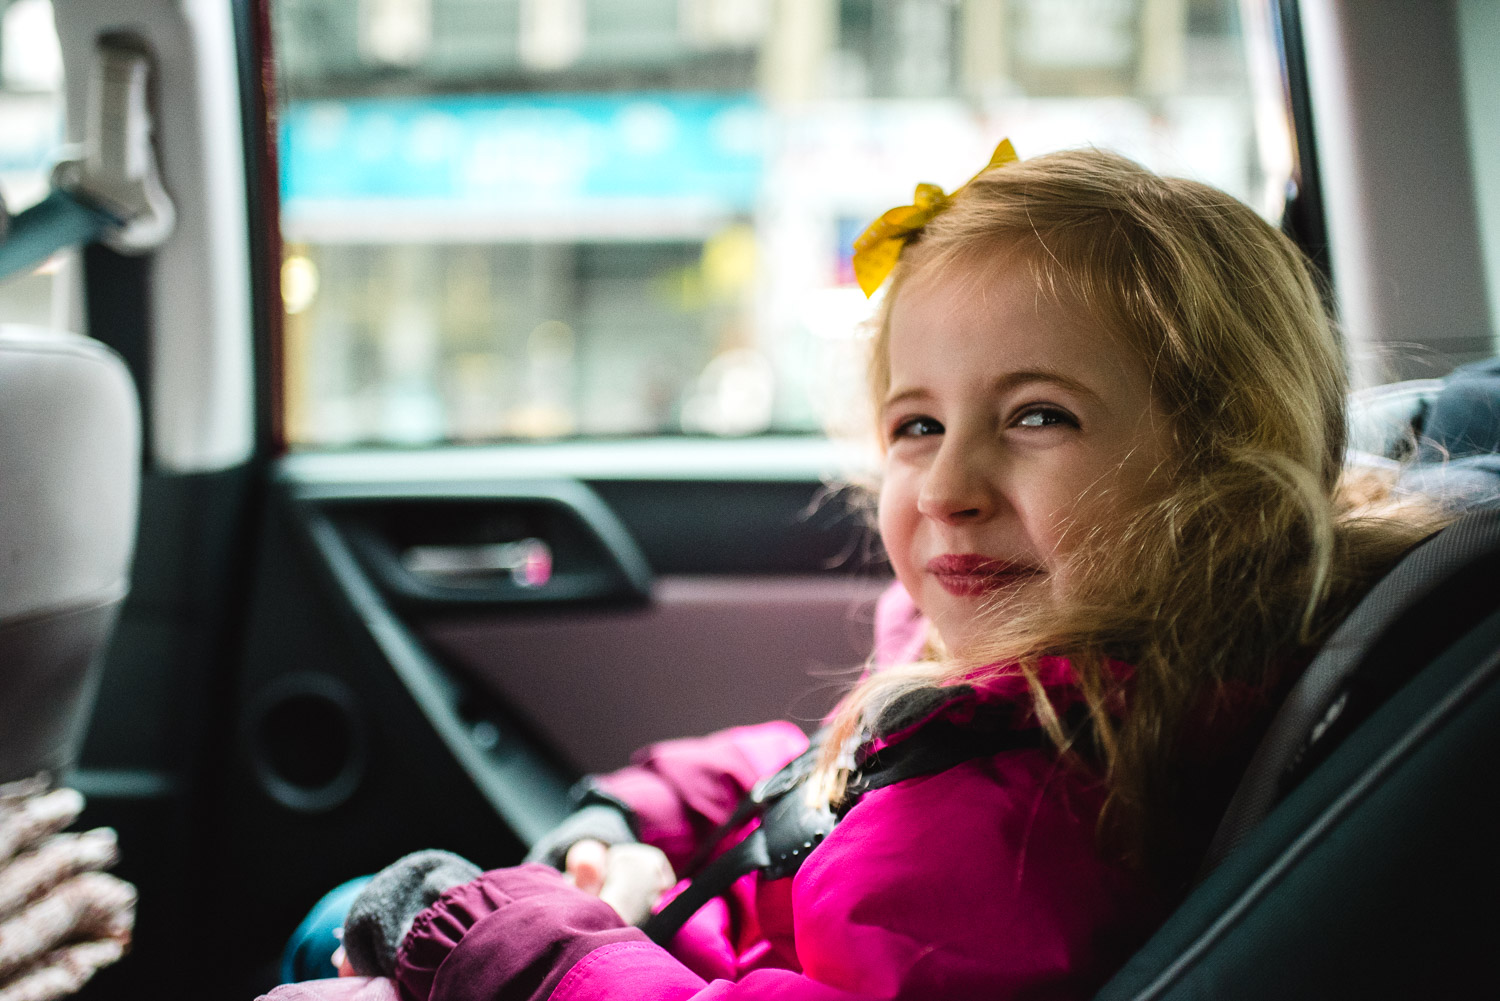 Little girl smiling in the car.